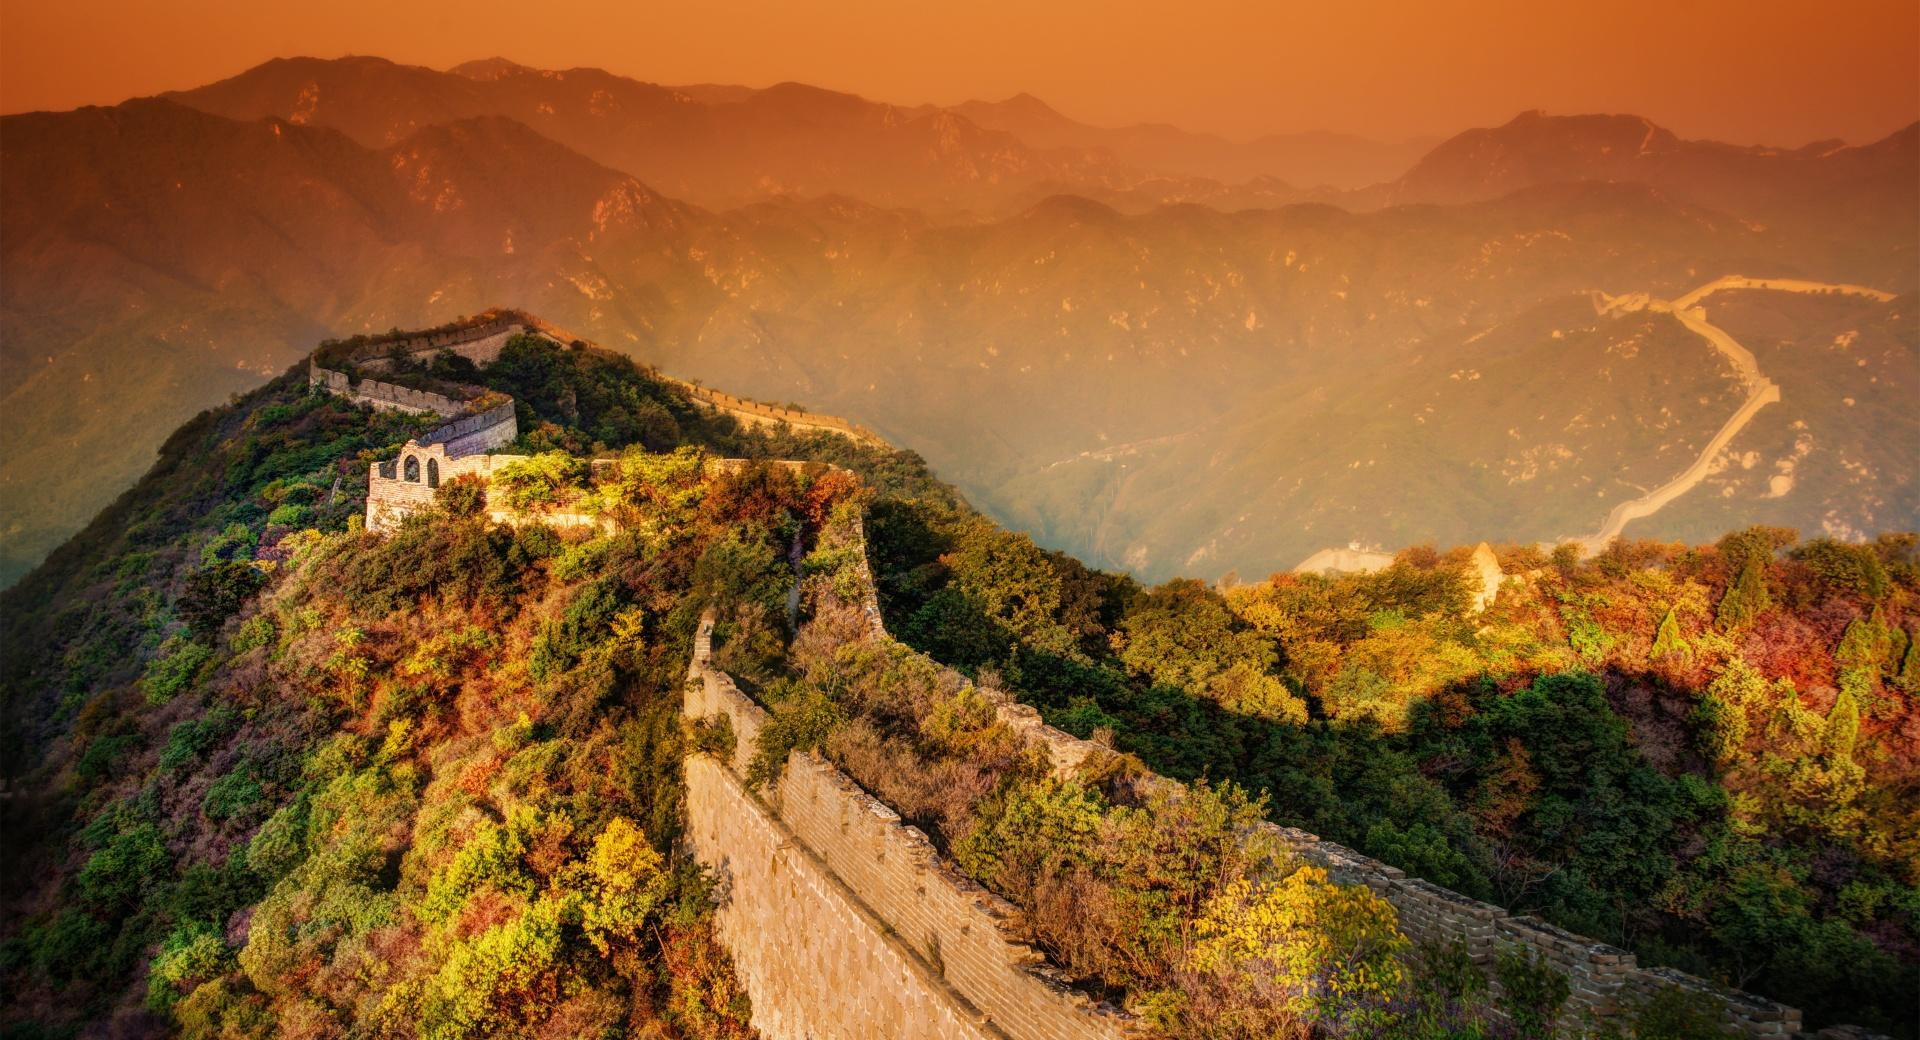 A moody evening at the Great Wall wallpapers HD quality